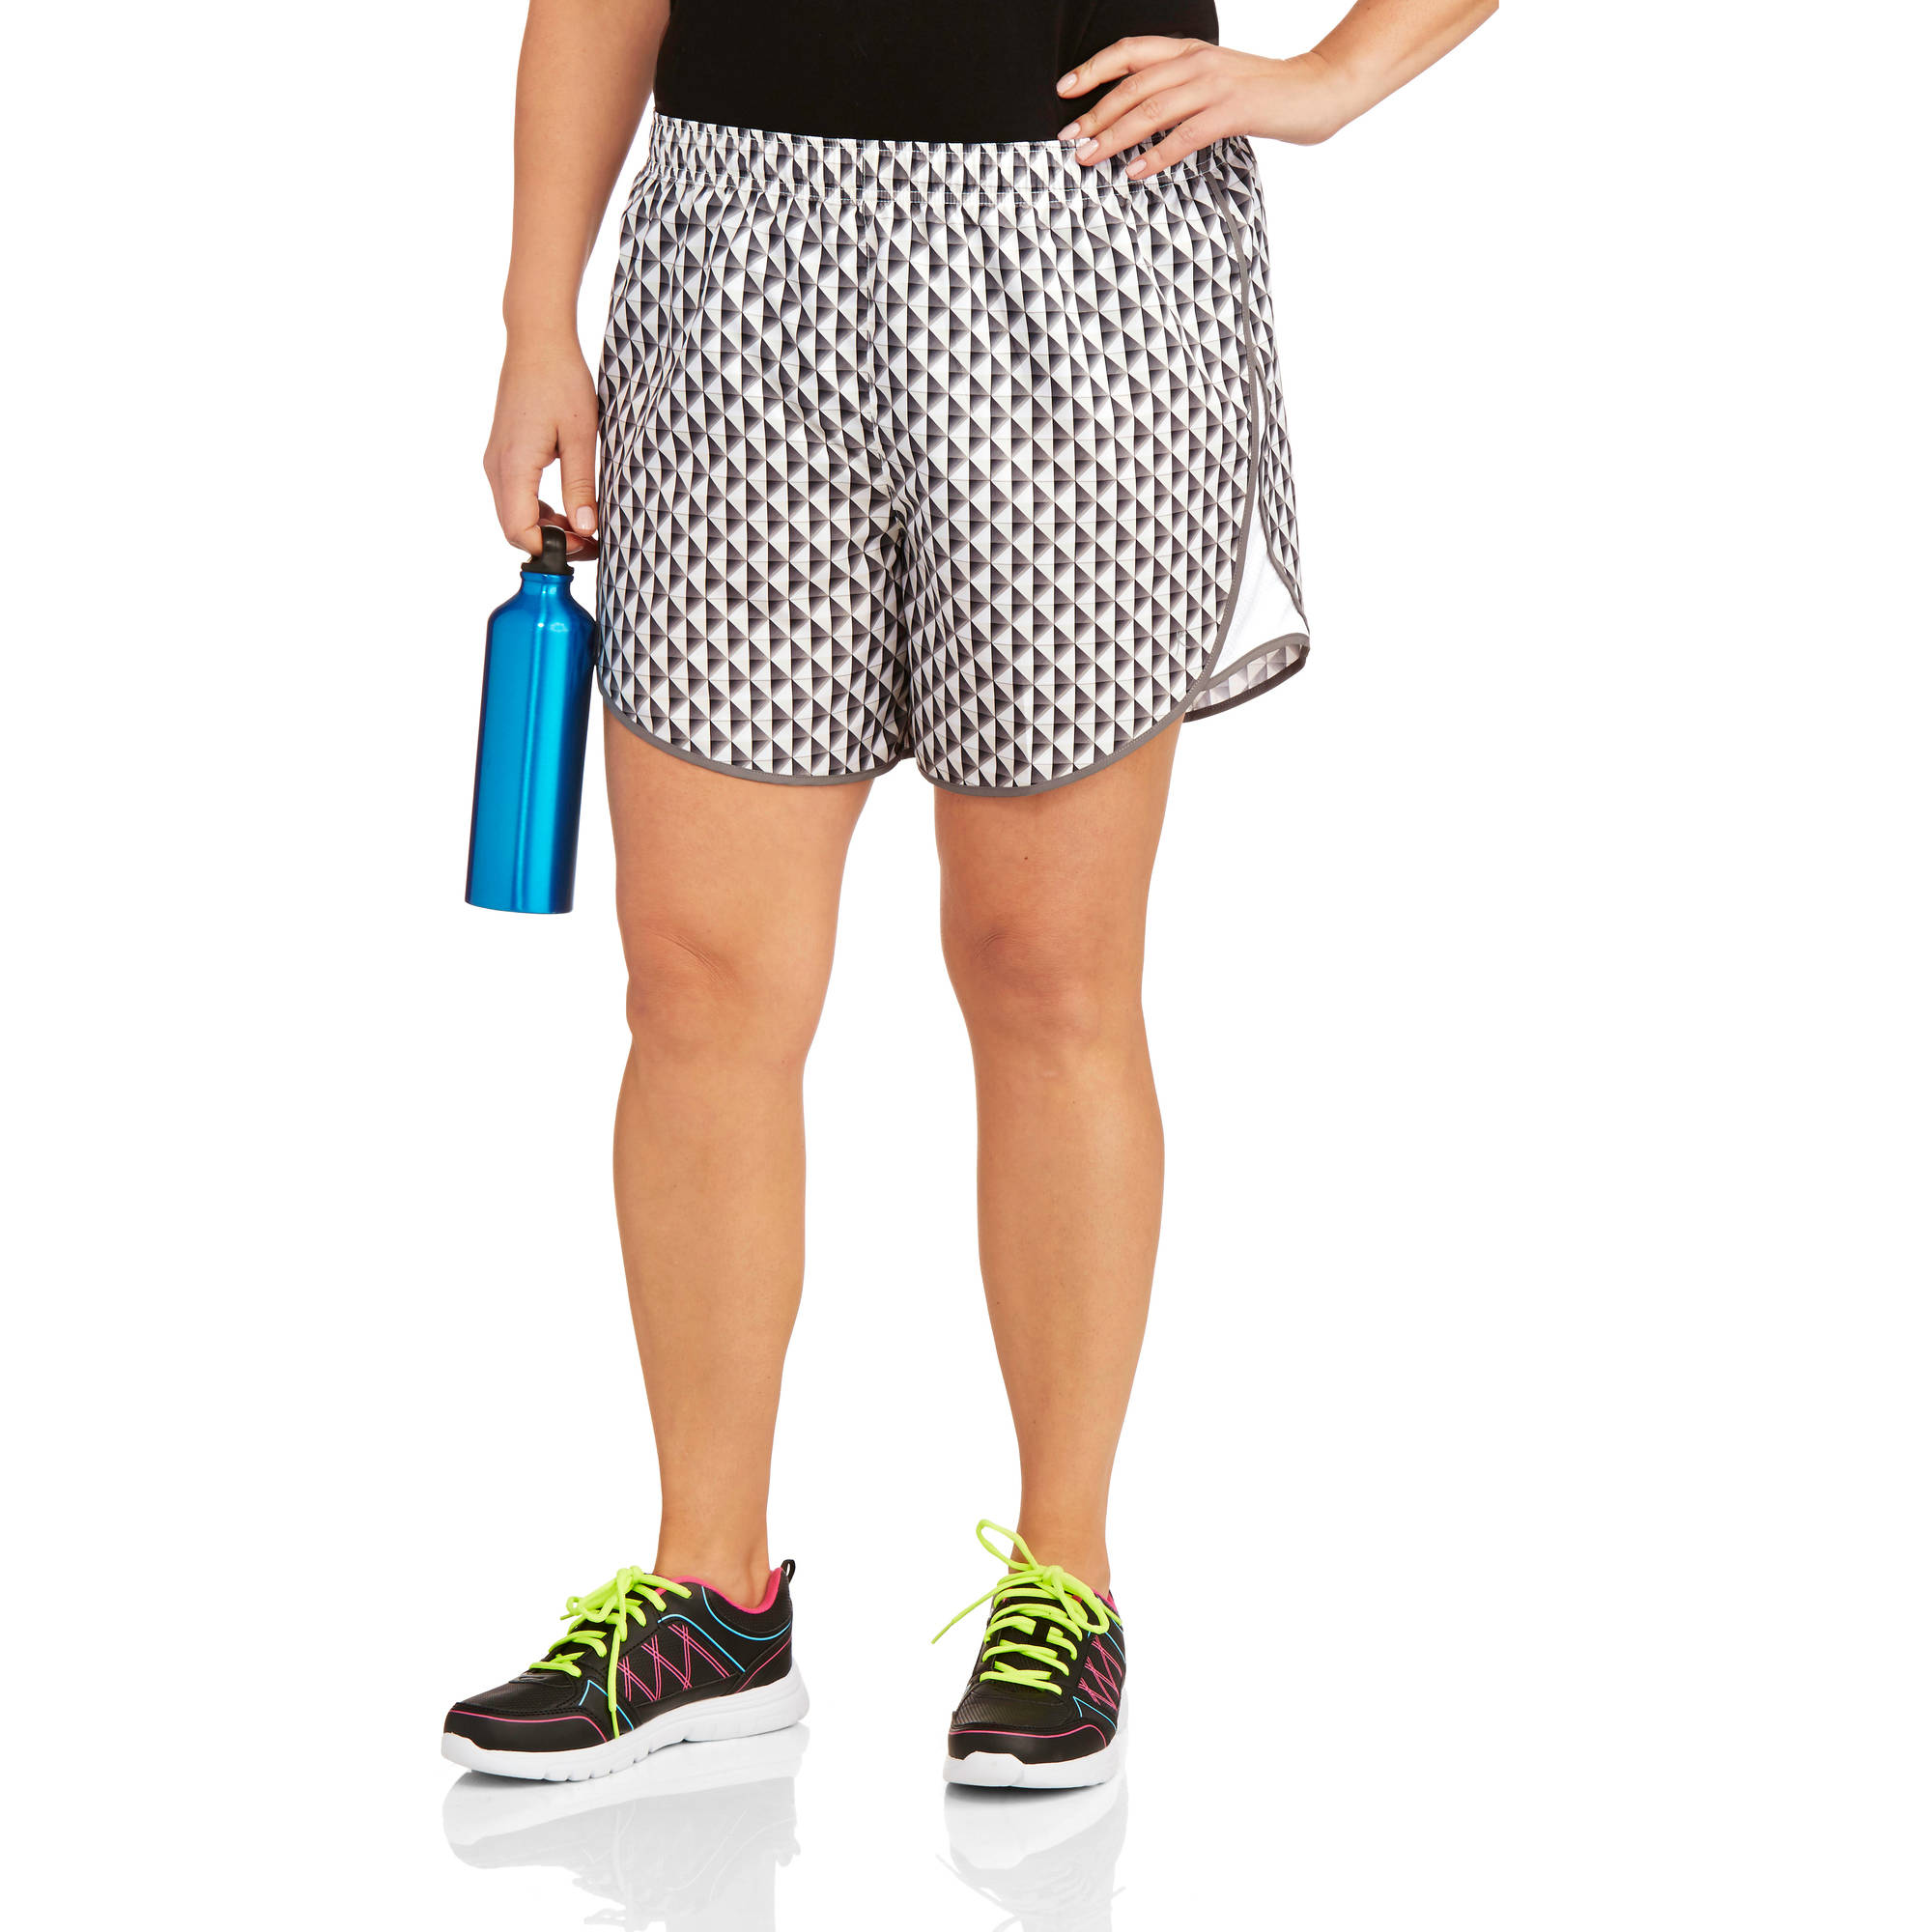 Women's Plus Shorts & Capris - Walmart.com